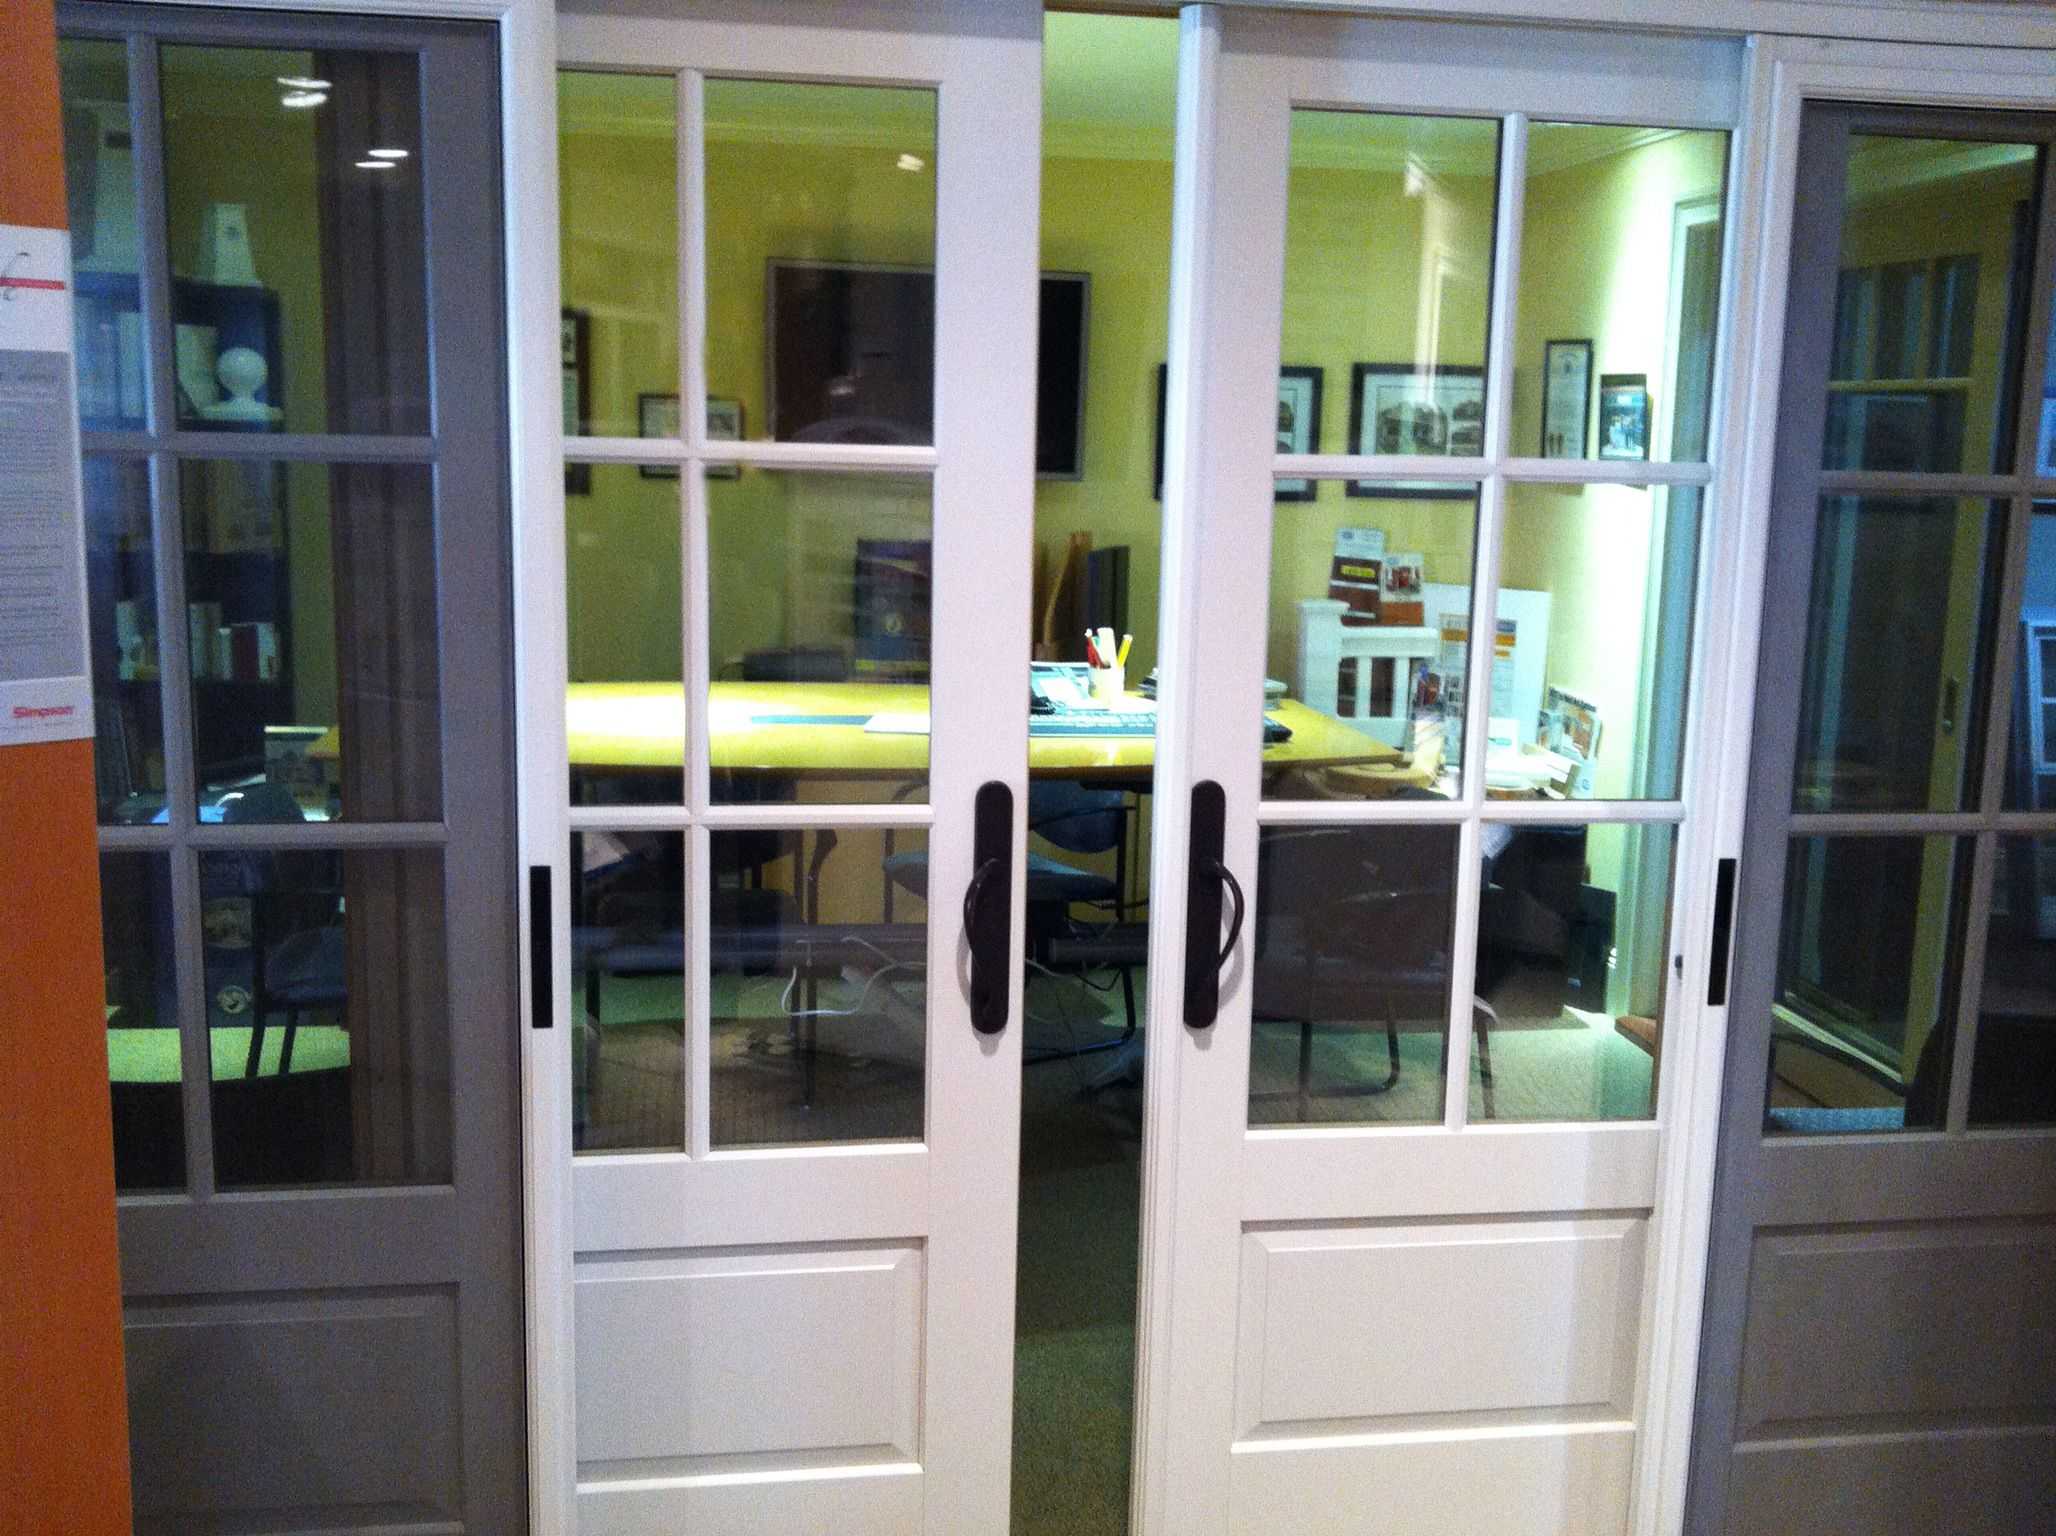 The marvin ultimate bi parting sliding french door in our for Marvin sliding screen door